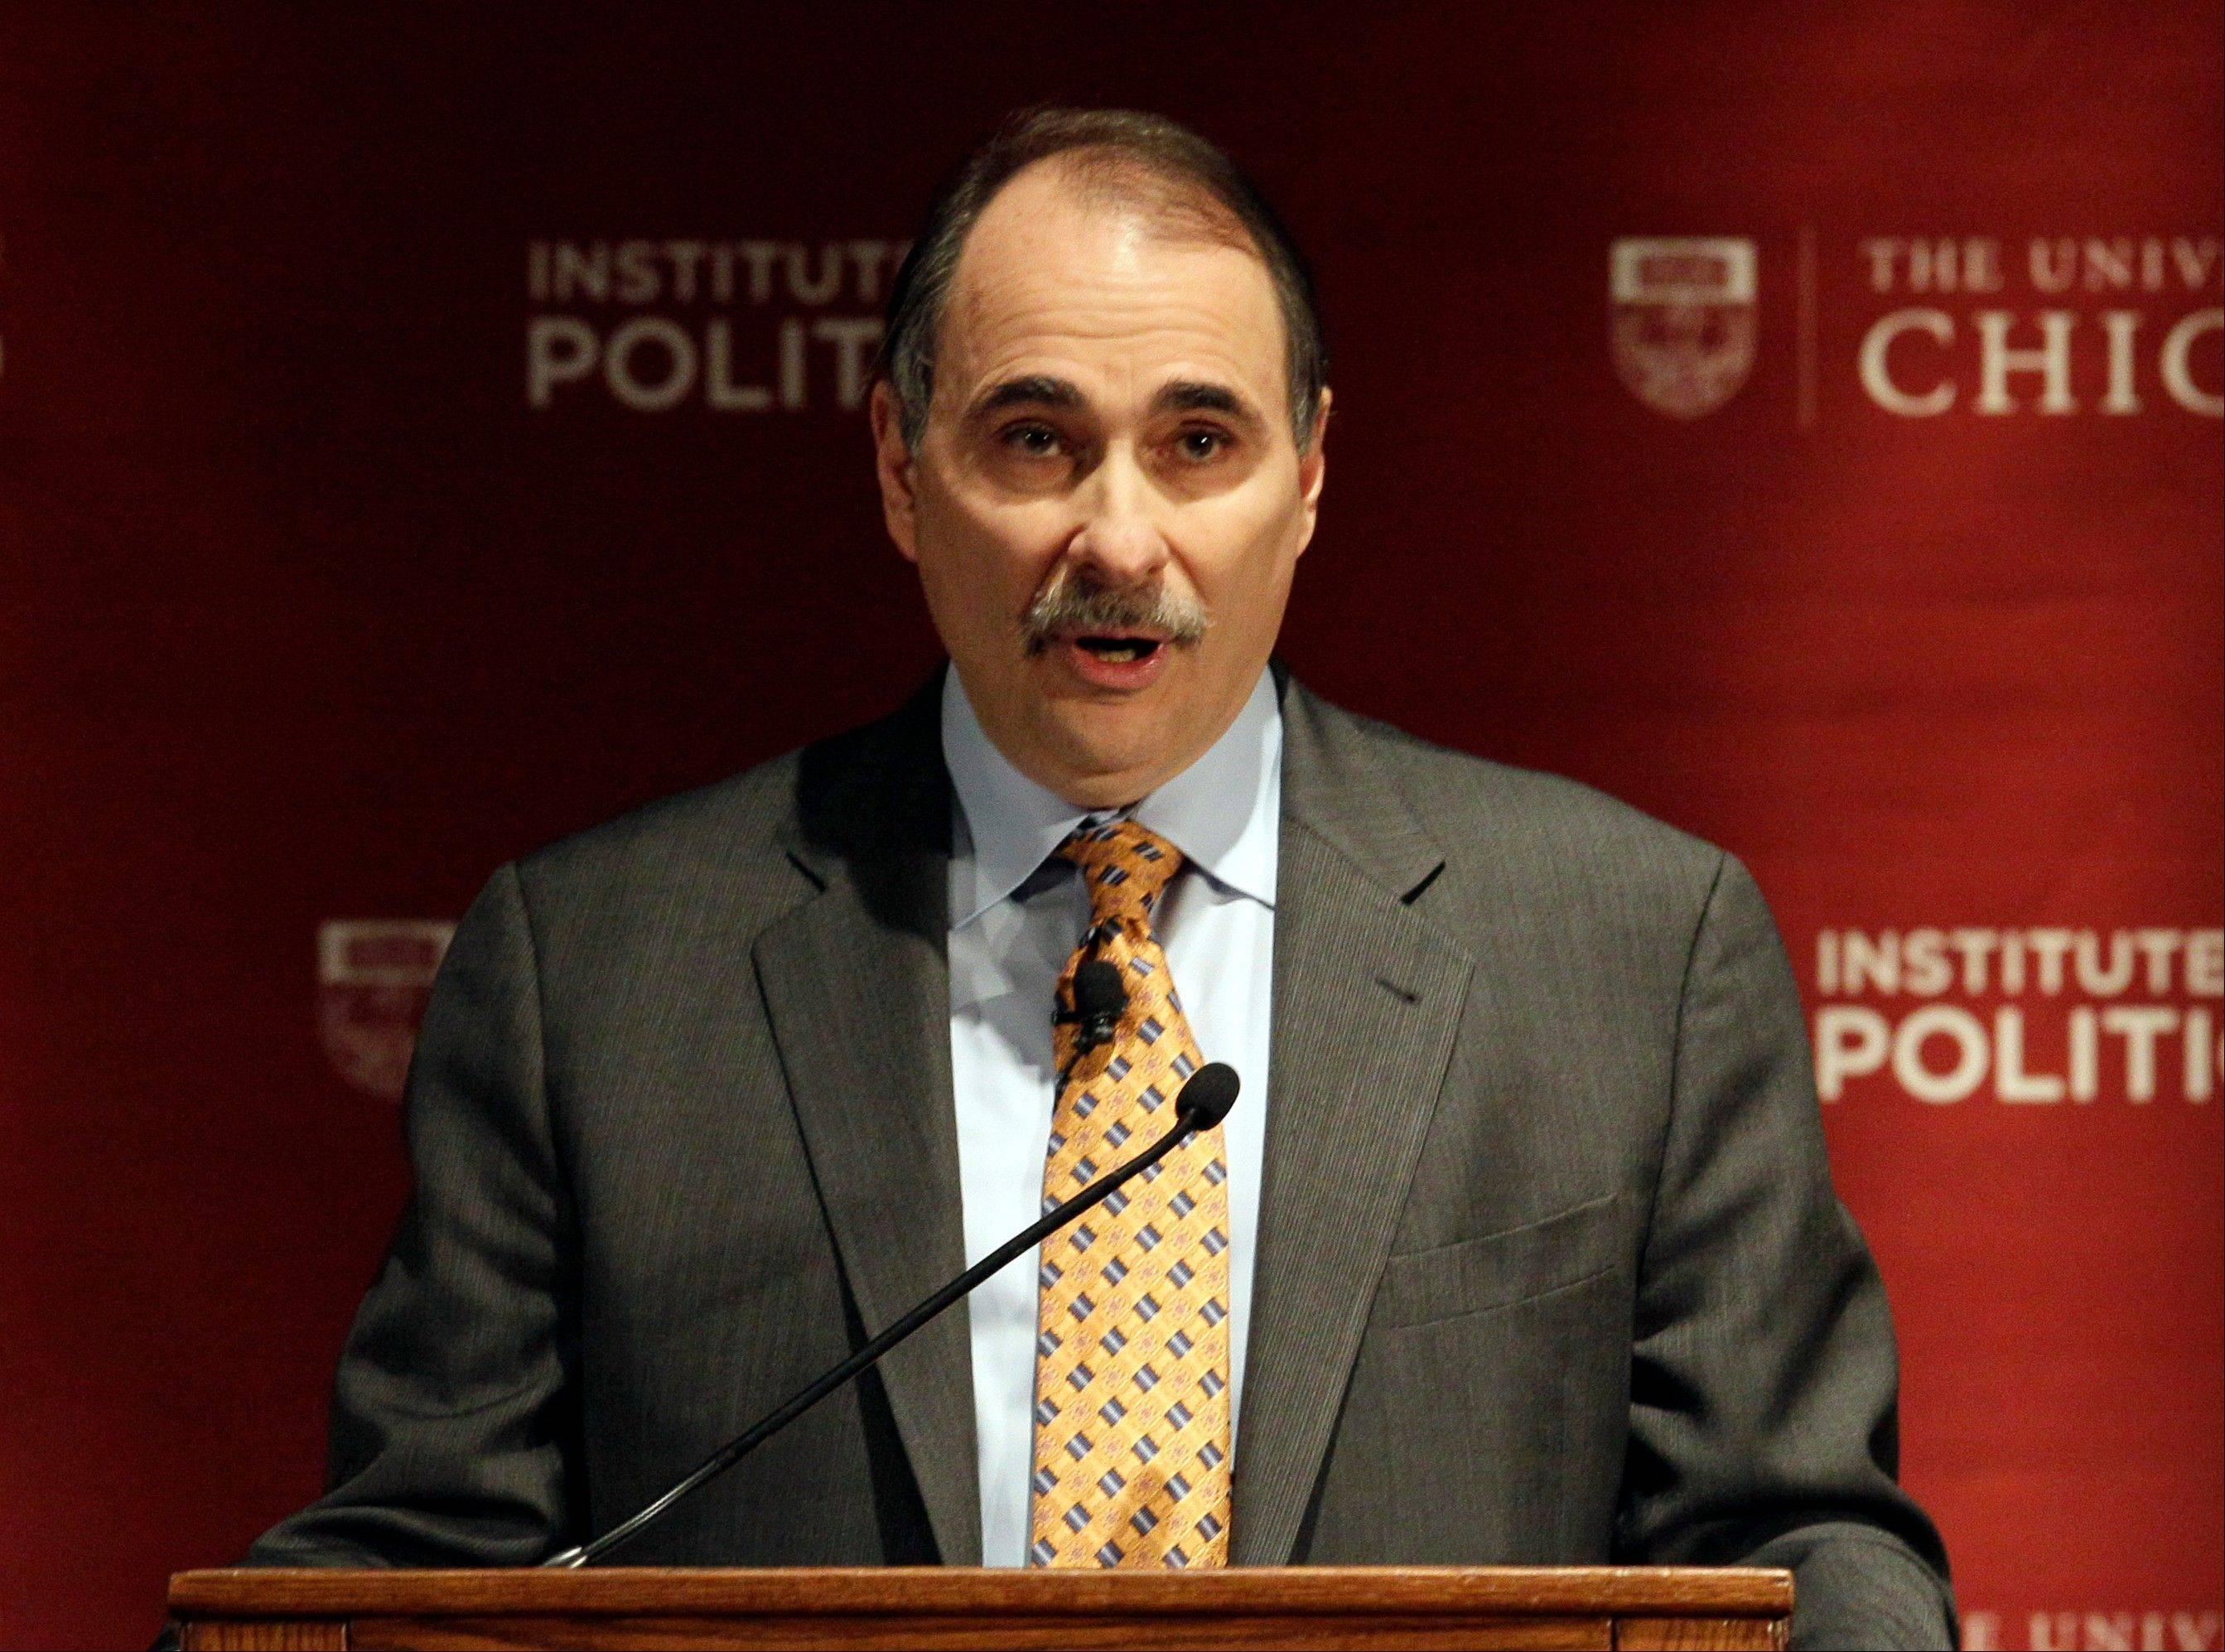 David Axelrod, former senior adviser to President Barack Obama, has landed a new job at NBC News as a senior political analyst.